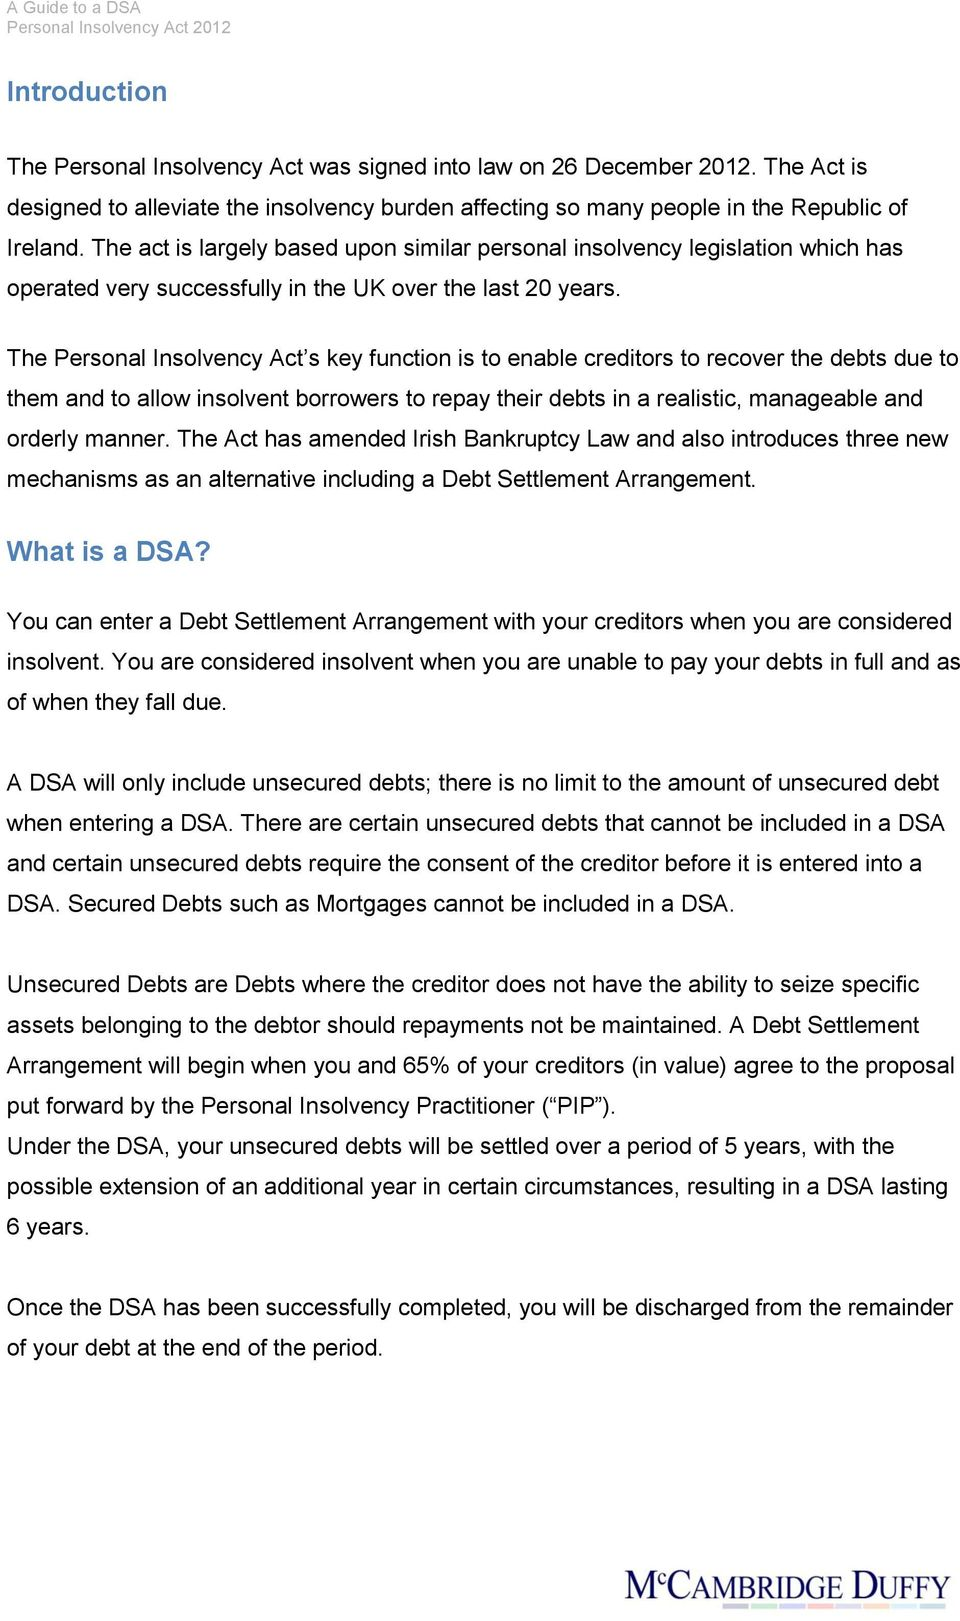 The Personal Insolvency Act s key function is to enable creditors to recover the debts due to them and to allow insolvent borrowers to repay their debts in a realistic, manageable and orderly manner.